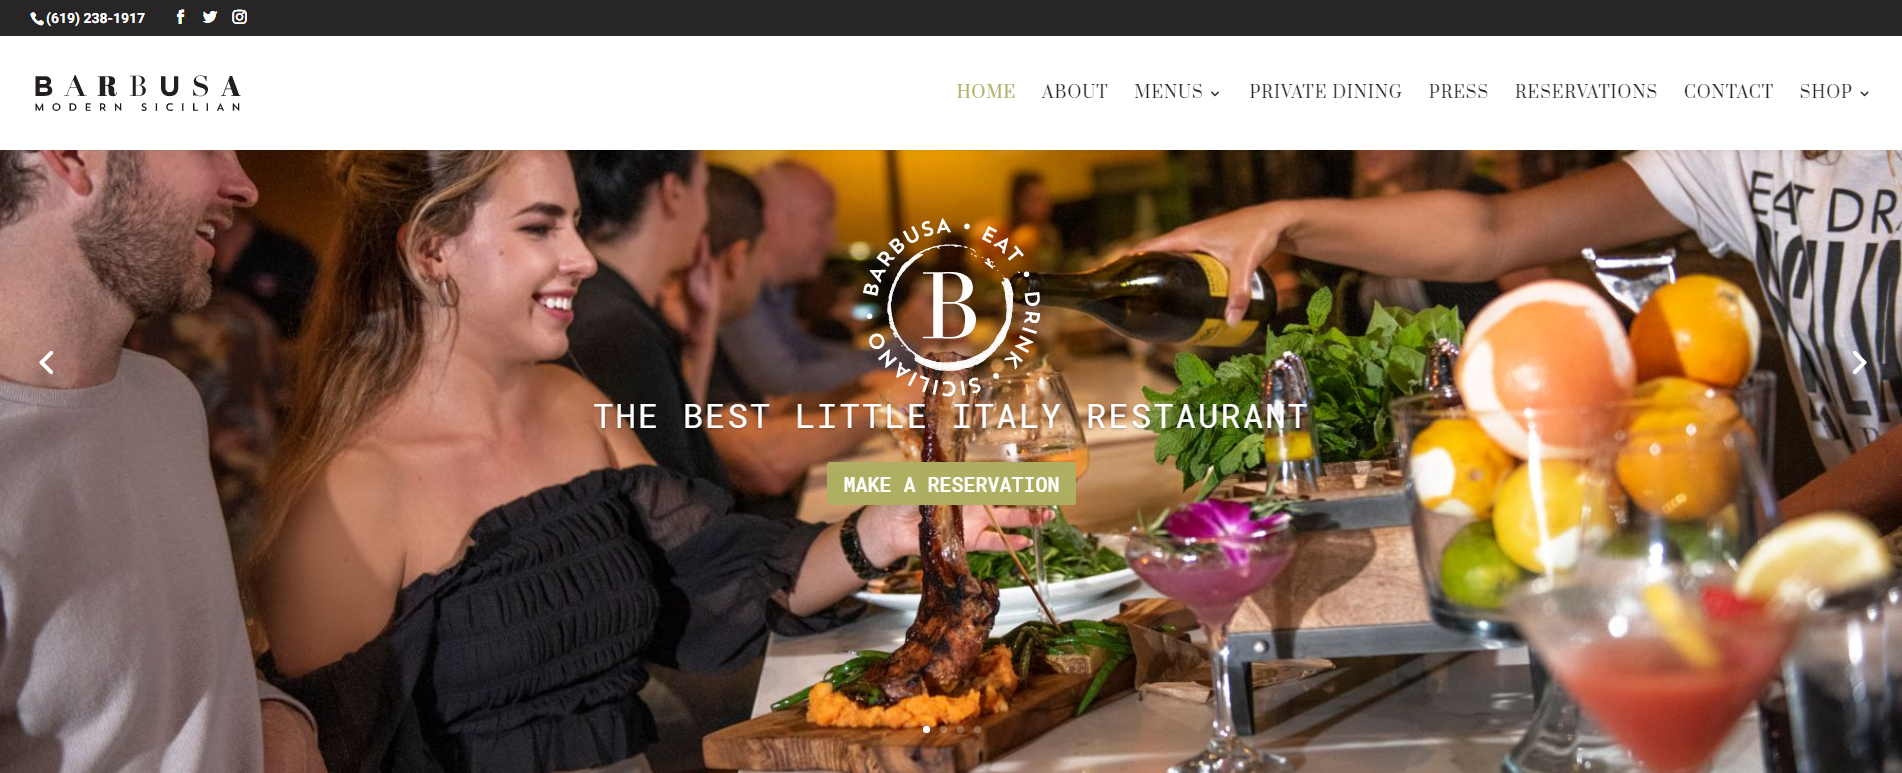 Barbusa WordPress Website